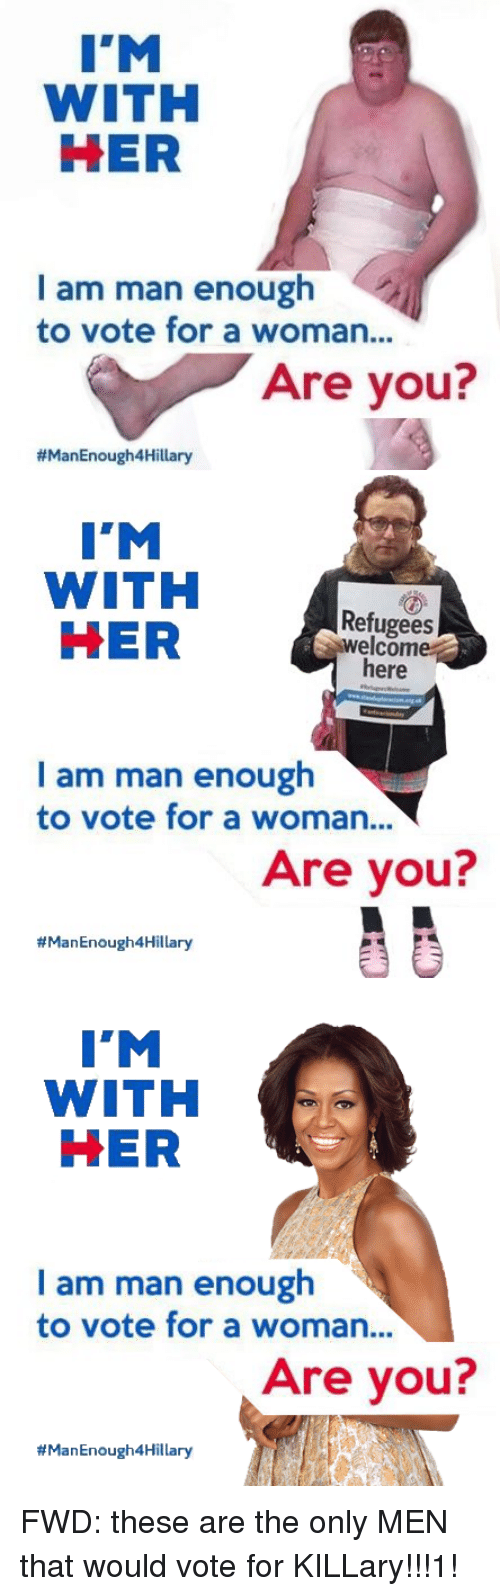 Forwardsfromgrandma, Her, and Ims: I'M  WITH  HER  I am man enough  to vote for a woman...  Are you?  #ManEnough4Hillary   I'M  WITH  HER  welcom  here  I am man enough  to vote for a woman...  Are you?  thManEnough4Hillary   I'M  WITH  HER  I am man enough  to vote for a woman...  Are you?  ry FWD: these are the only MEN that would vote for KILLary!!!1!